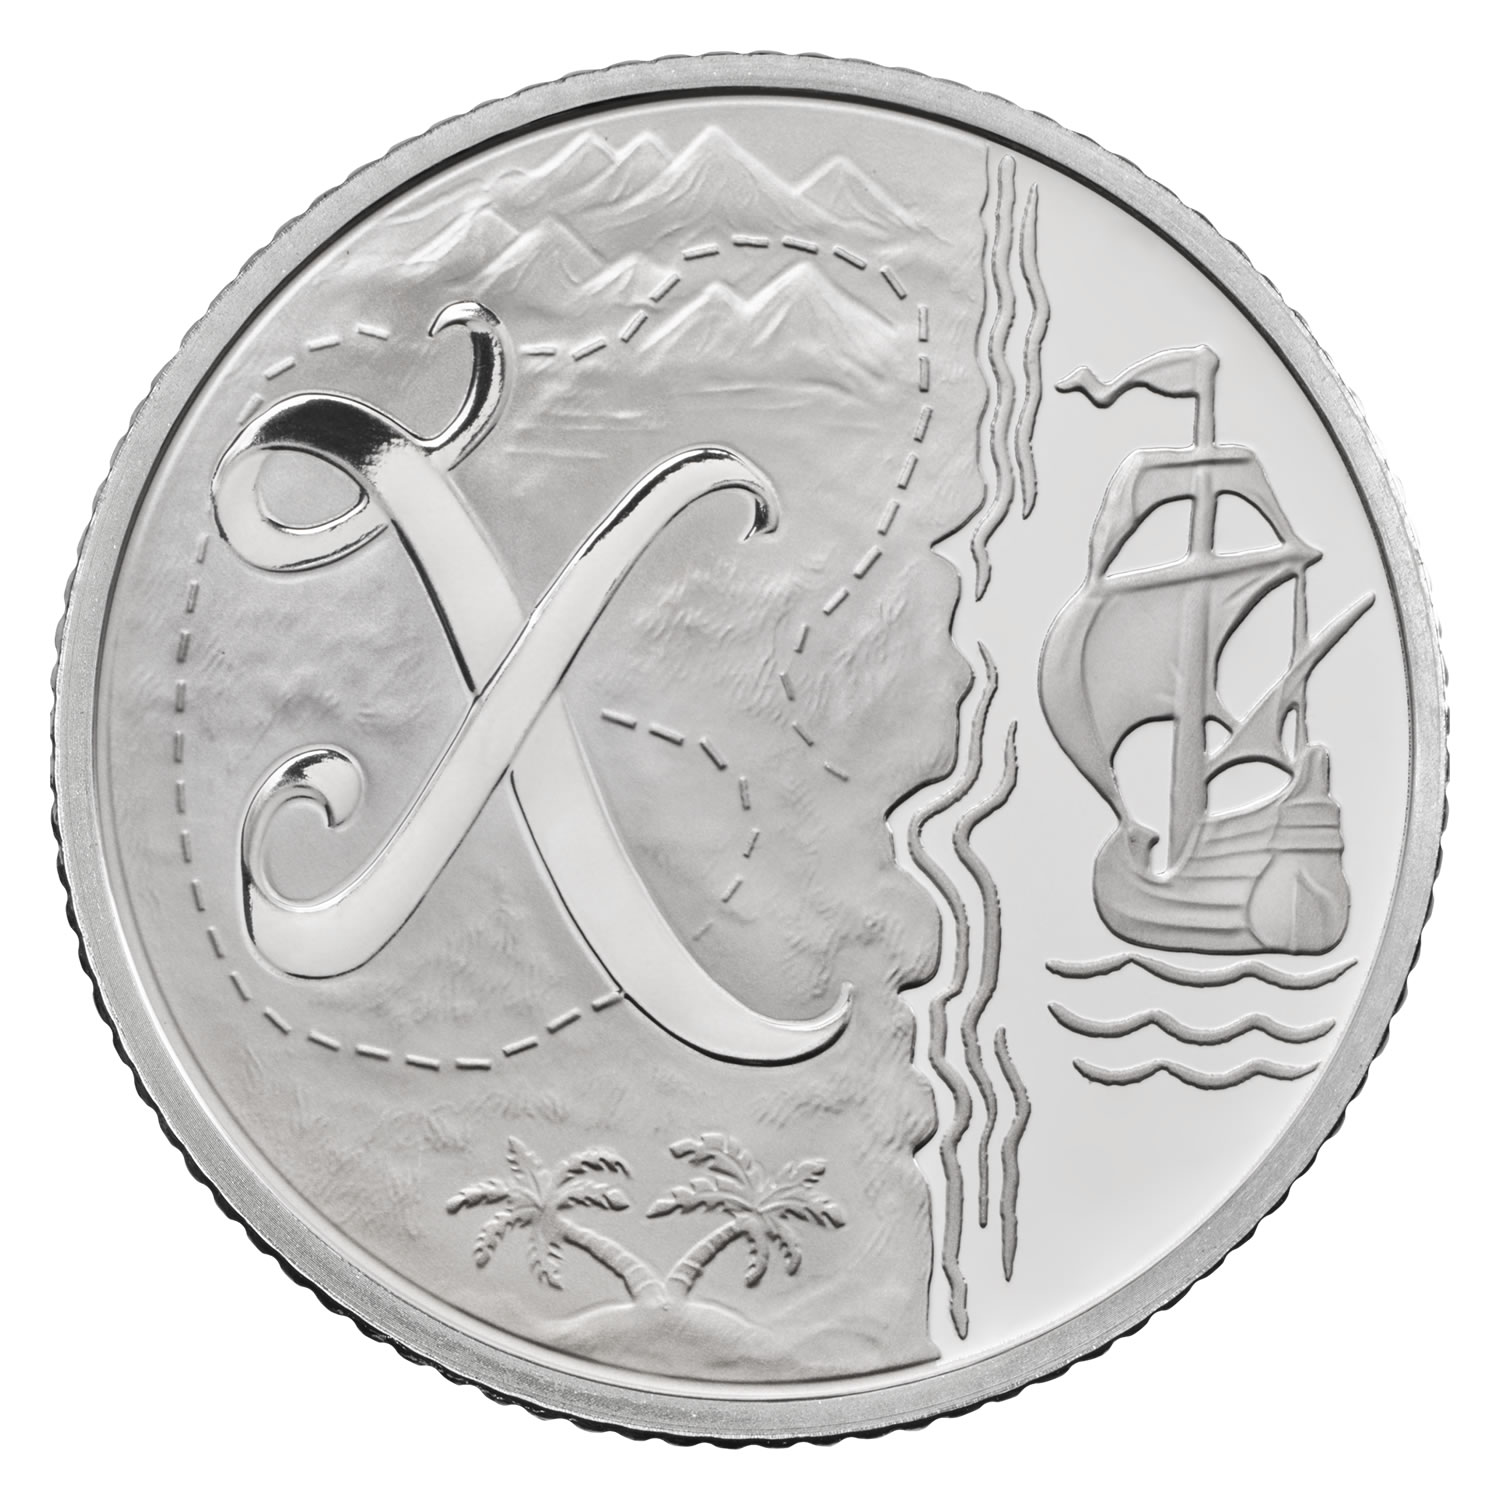 X - X marks the spot 2018 UK 10p Silver Proof Coin